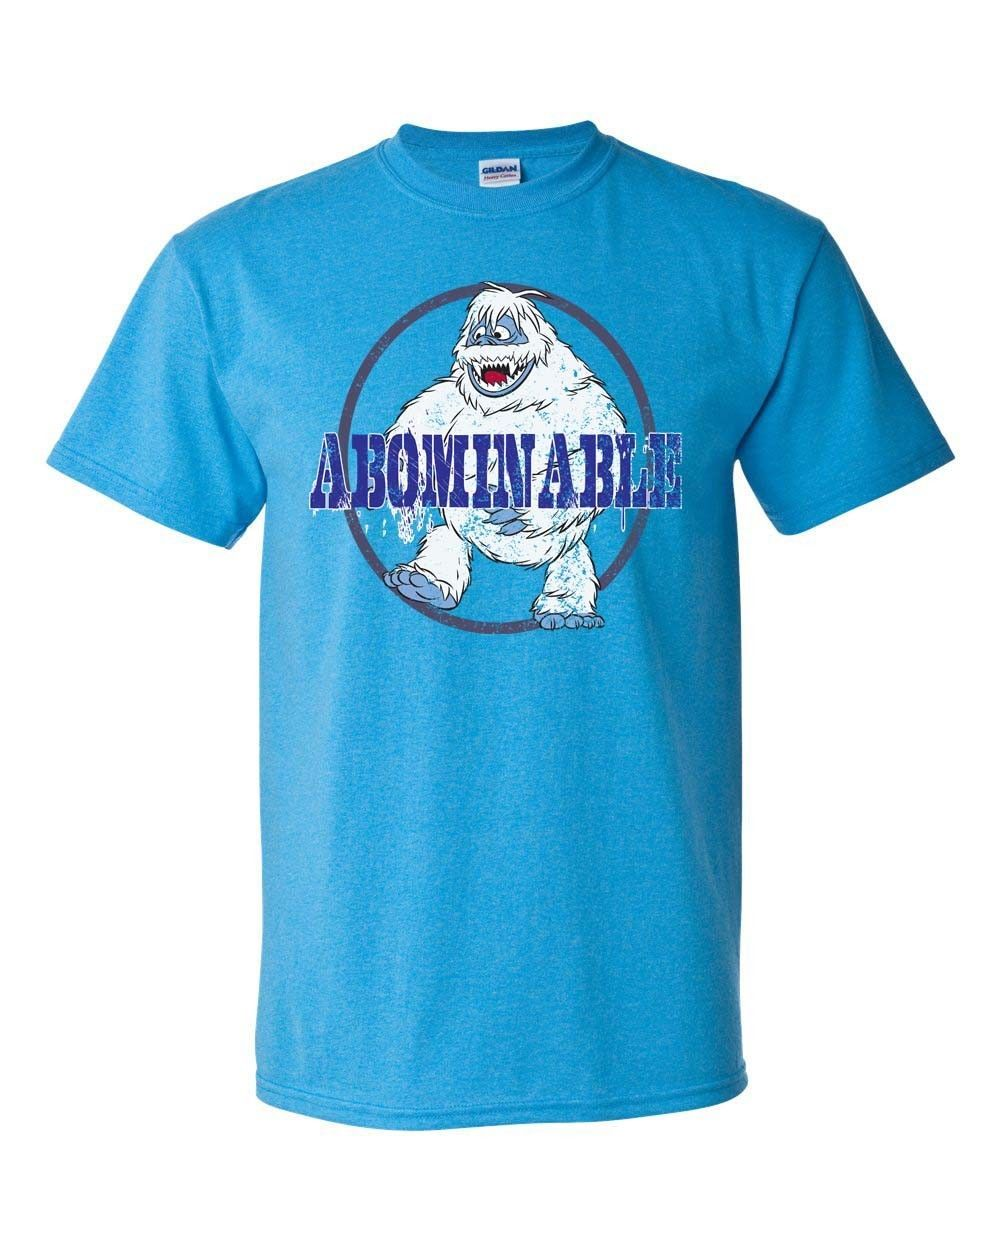 Abominable snowman graphic tshirt for sale online graphic blue tee